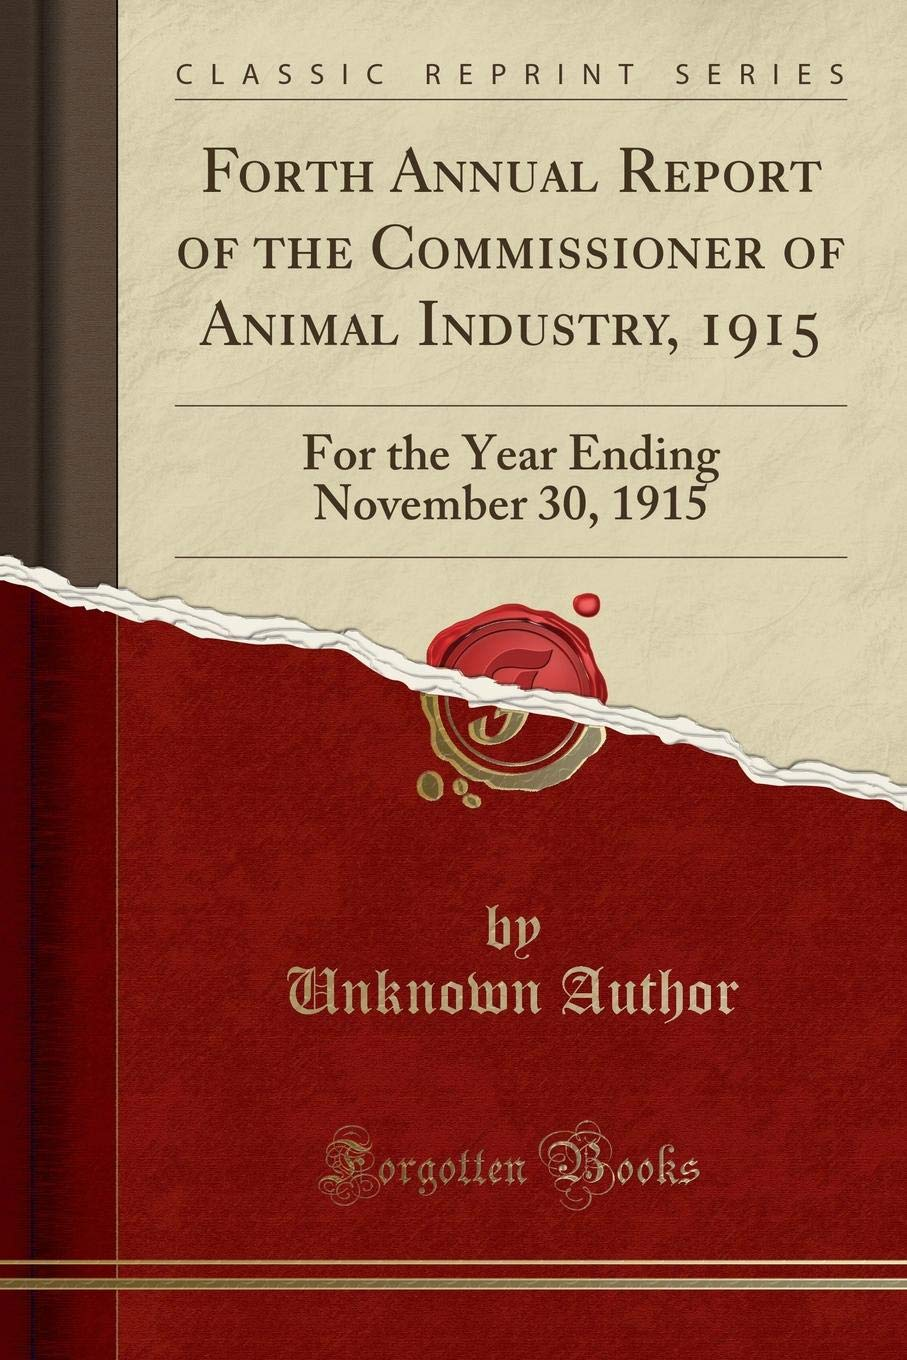 Forth Annual Report of the Commissioner of Animal Industry, 1915: For the Year Ending November 30, 1915 (Classic Reprint) PDF